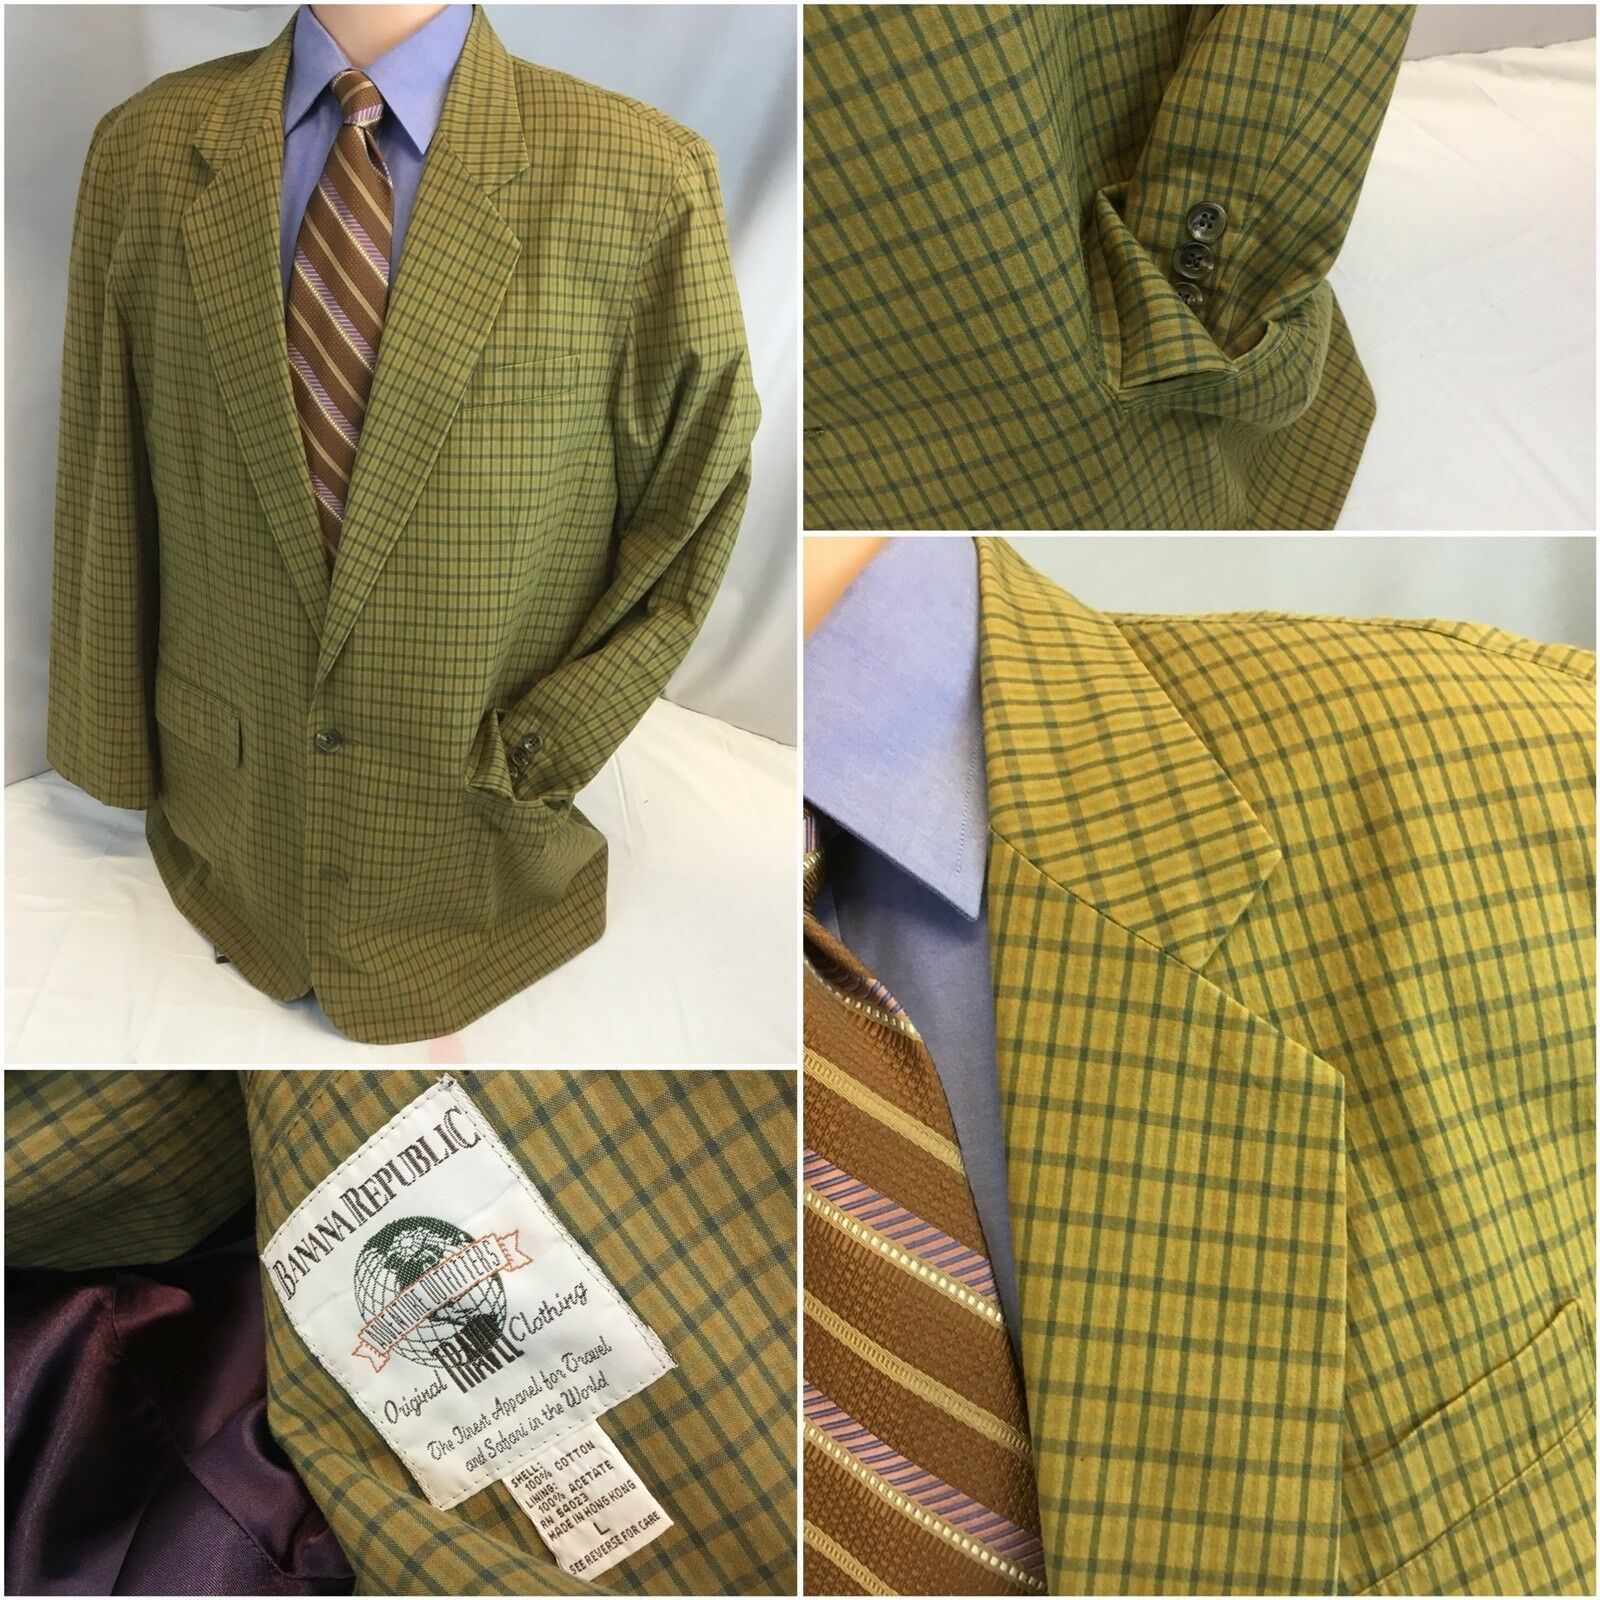 Banana Banana Banana Republic Blazer L Tan Plaid Cotton 2b Made Hong Kong 42R  YGI F8-340 f1f058